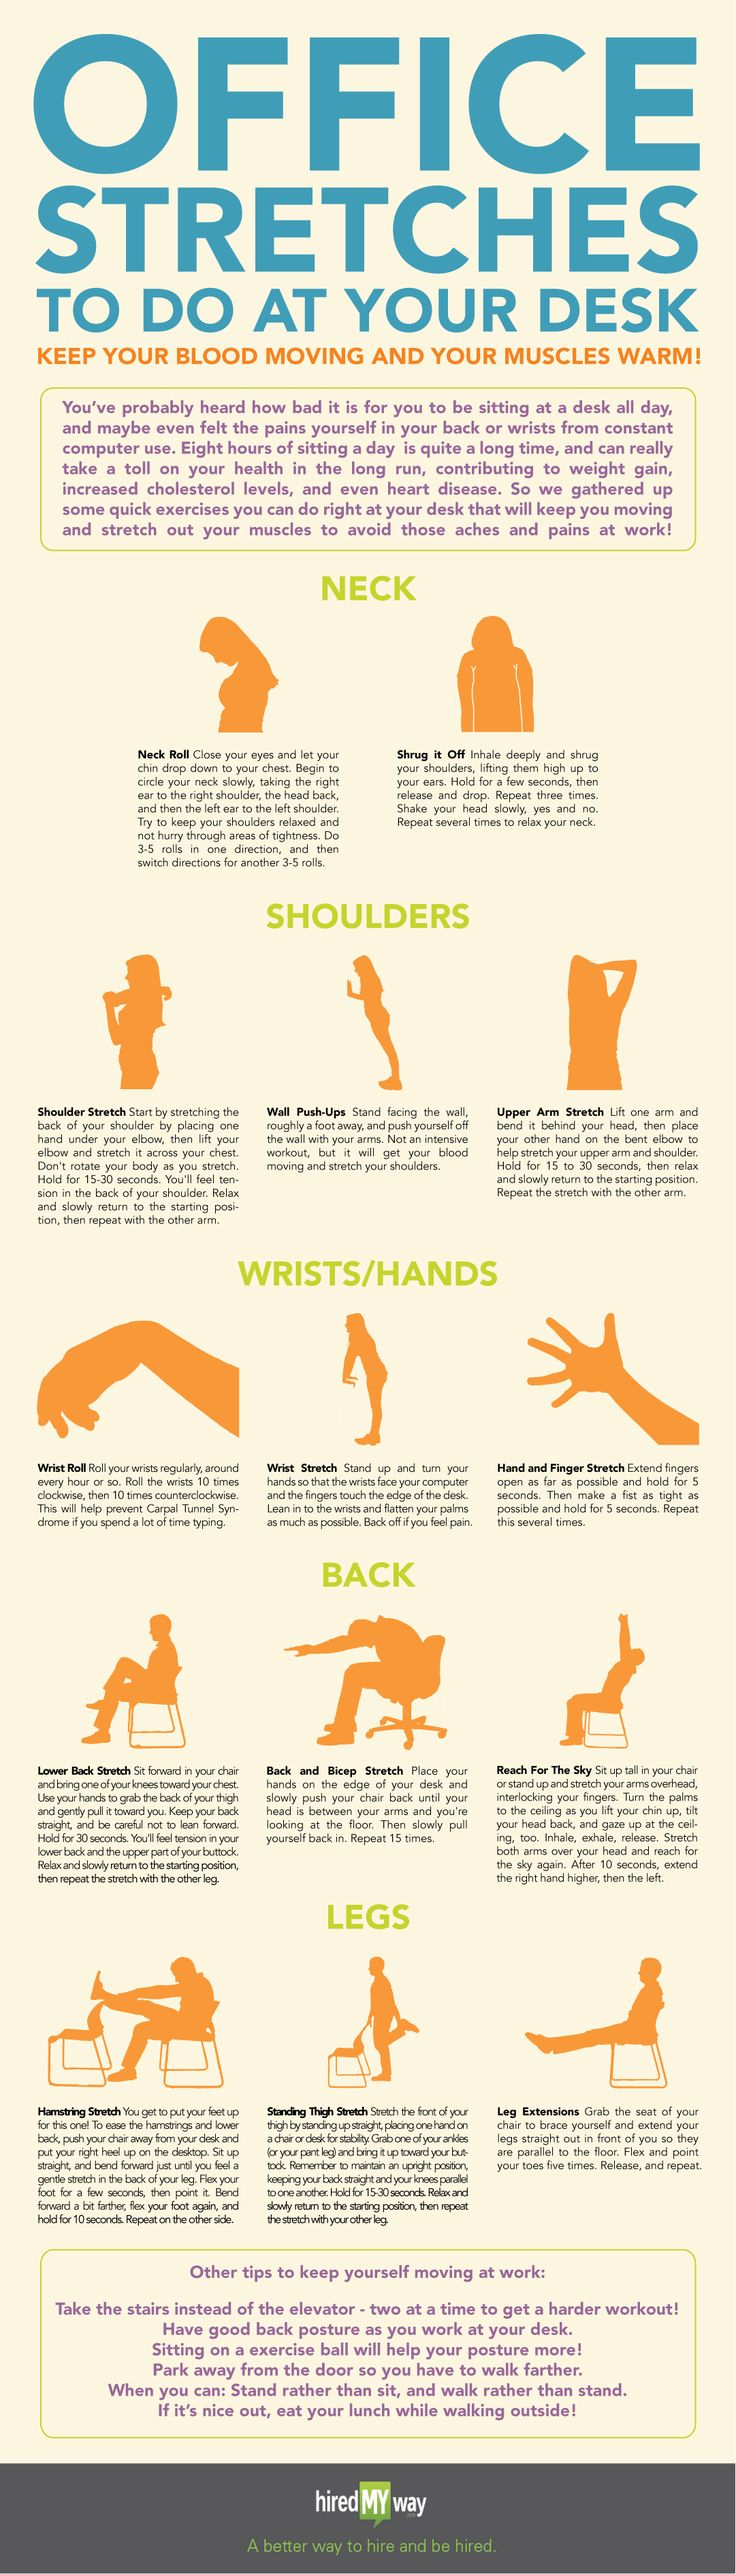 14 Office Stretches That Will Make You Feel Better in Seconds - Life Reimagined